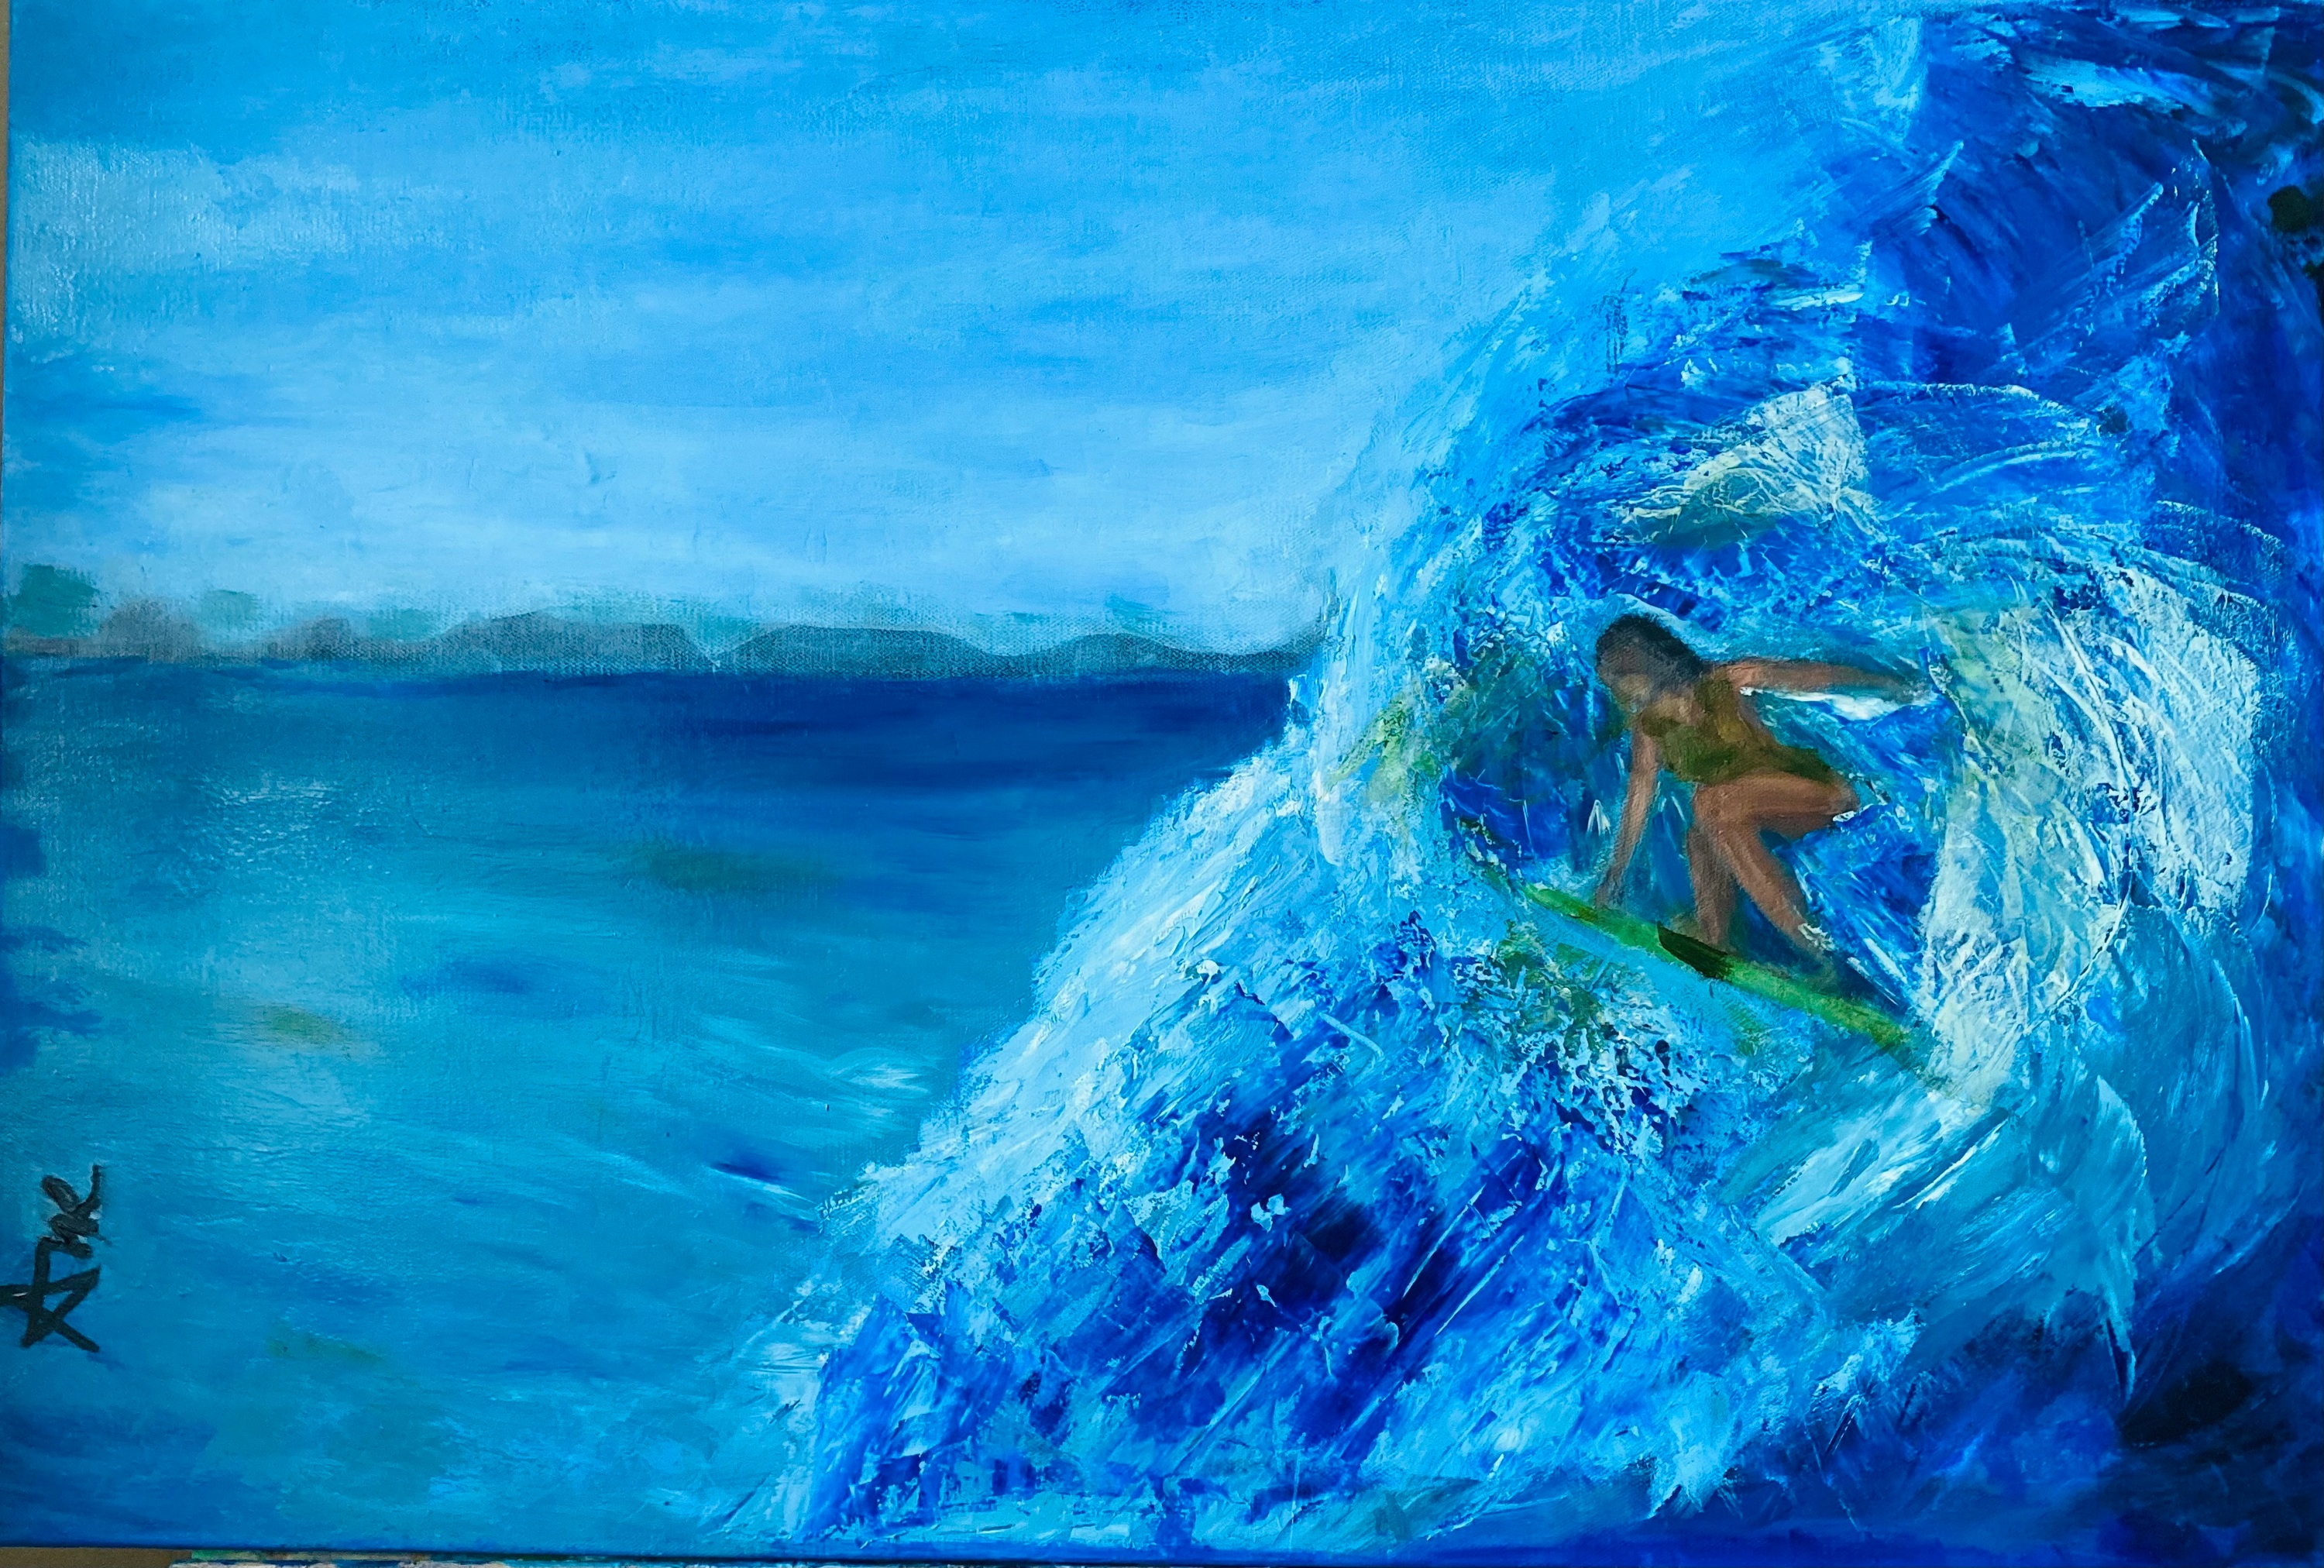 Wahinesurfer ghky9a